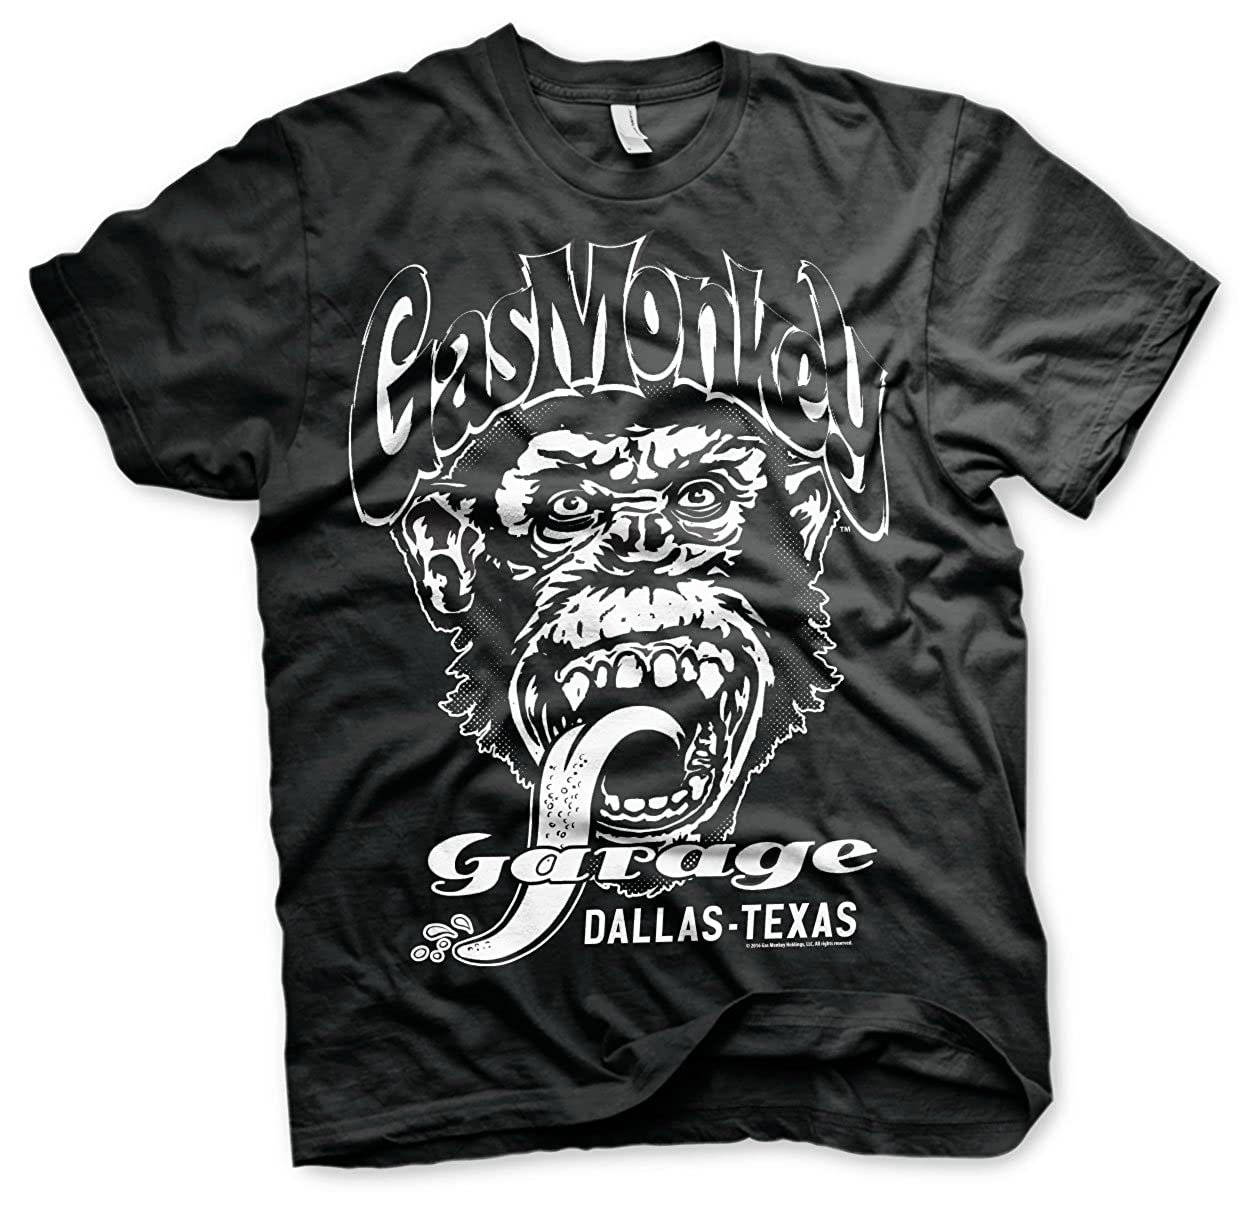 Mercancía Con Licencia Oficial Gas Monkey Garage - Dallas Texas T-Shirt (Negro)